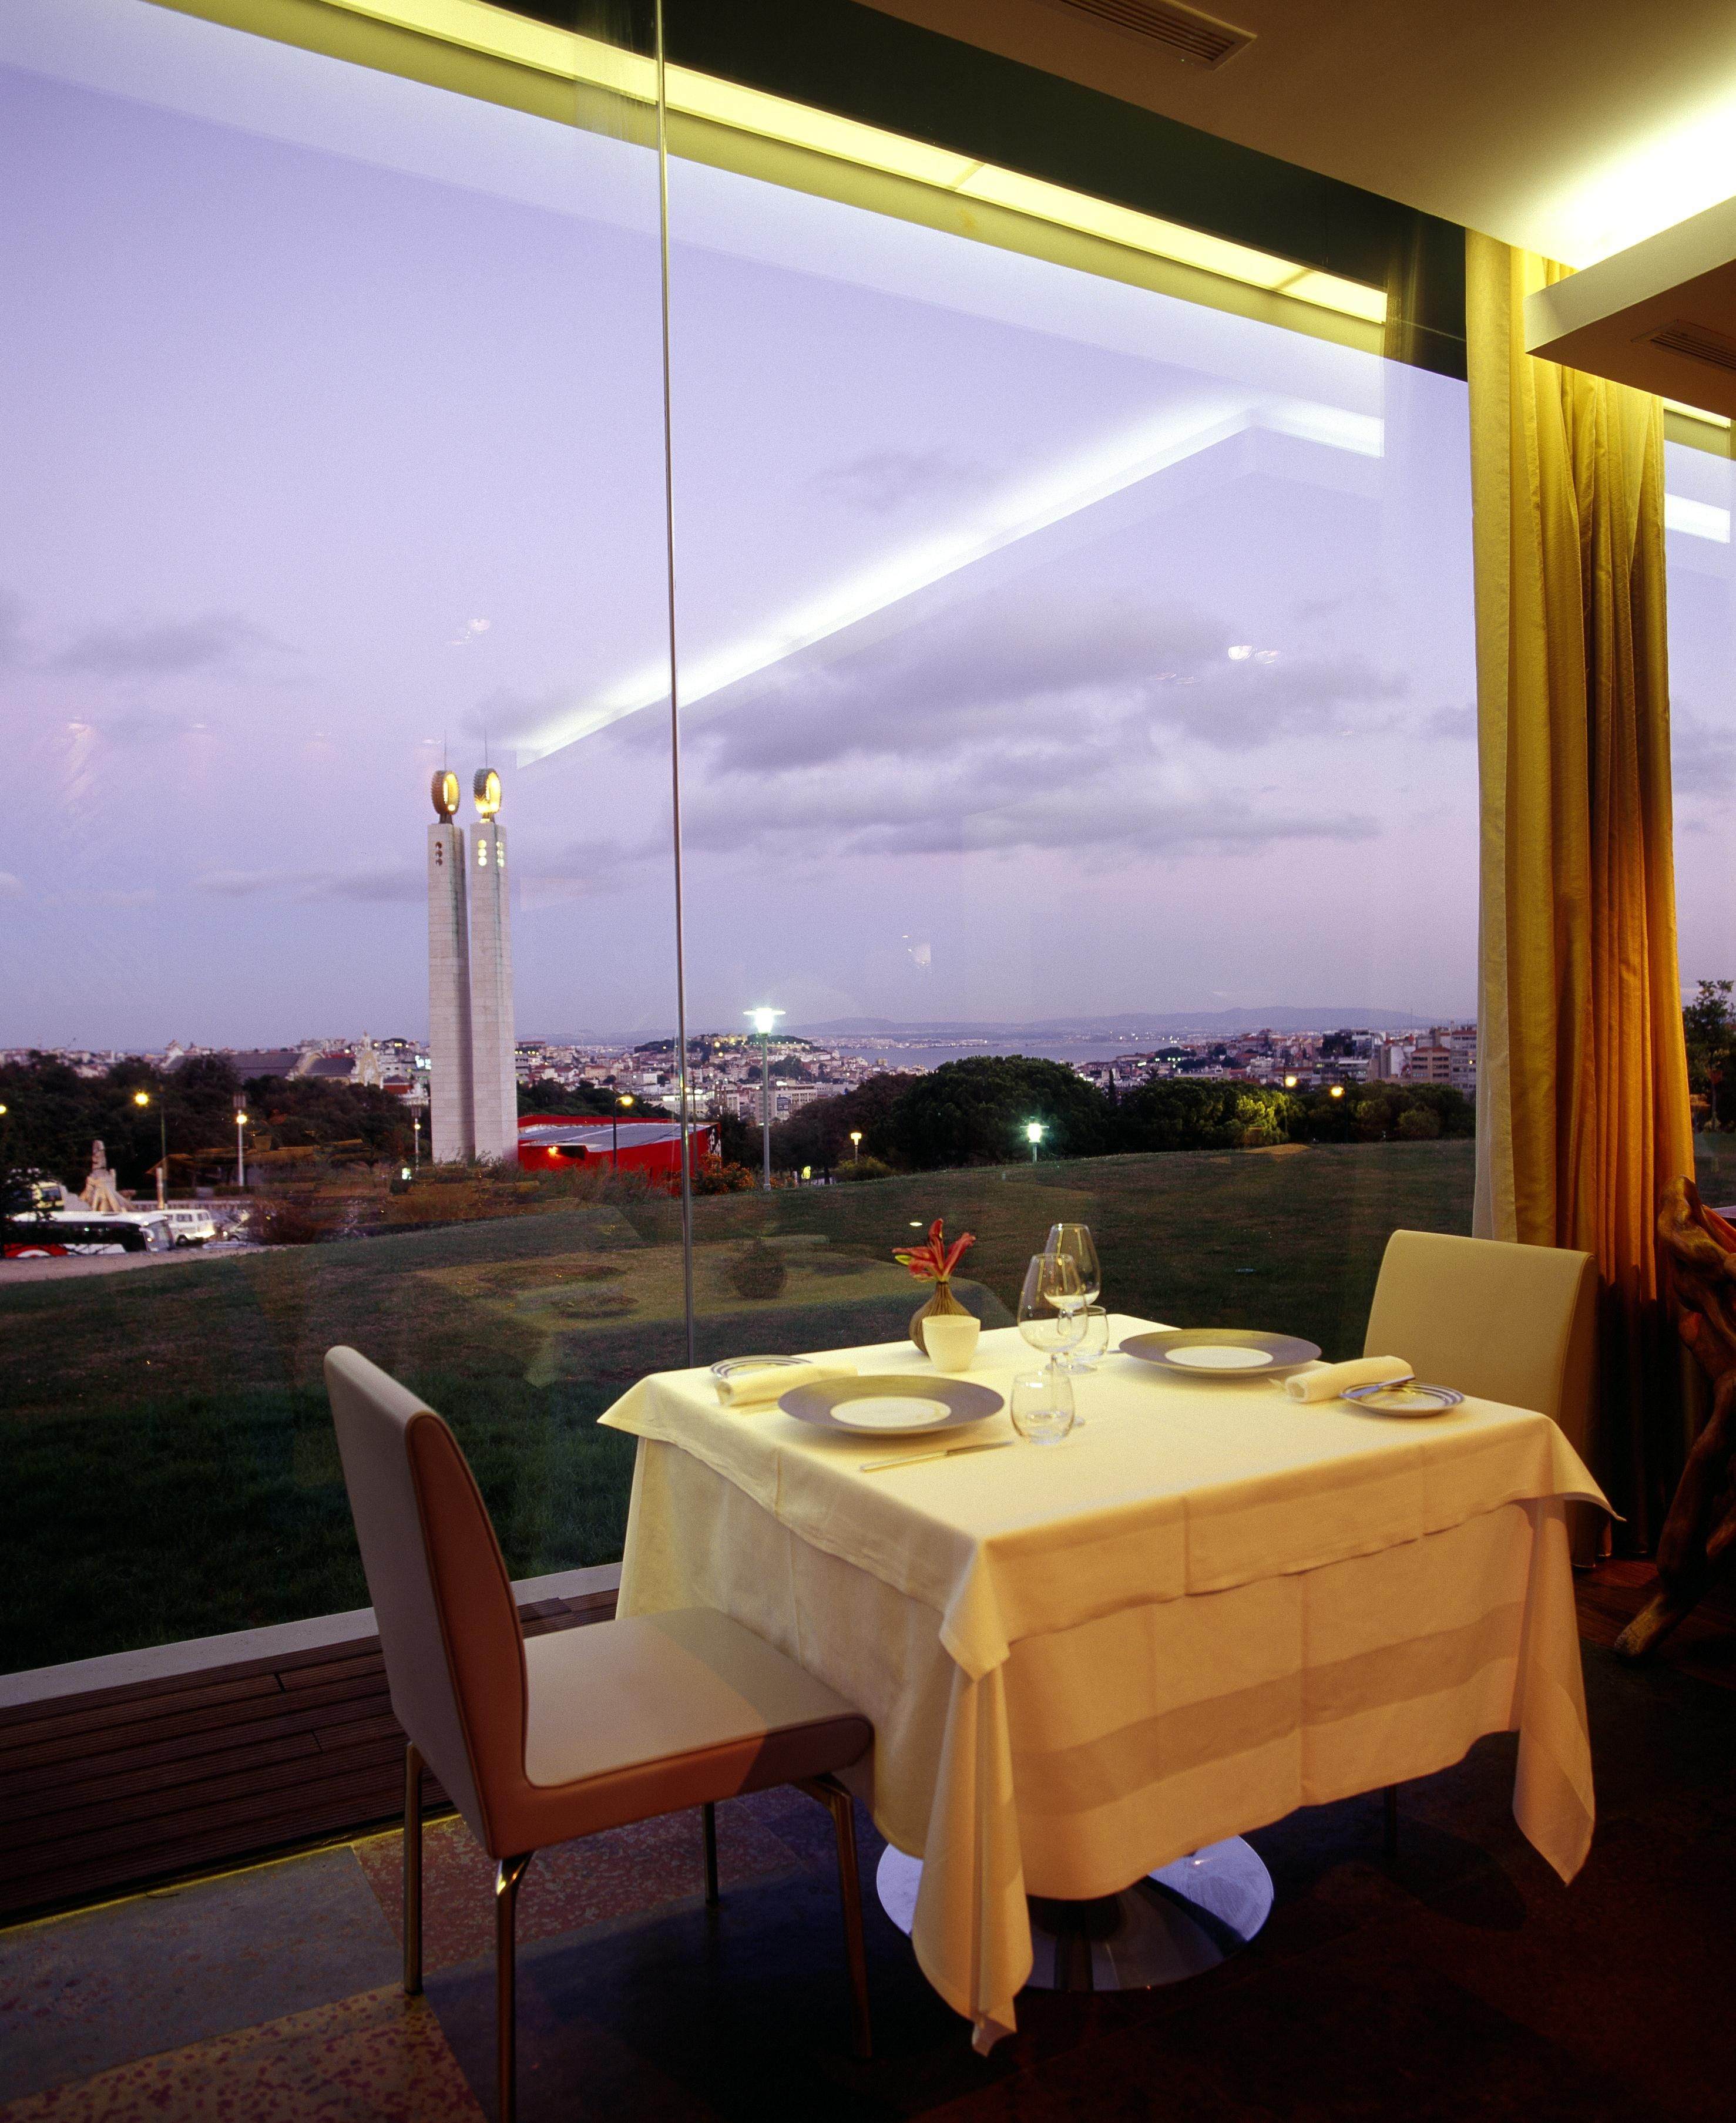 e54a7f2fd A restaurant with a view - Eleven Restaurant by Thema Hotels, Lisbon,  Portugal